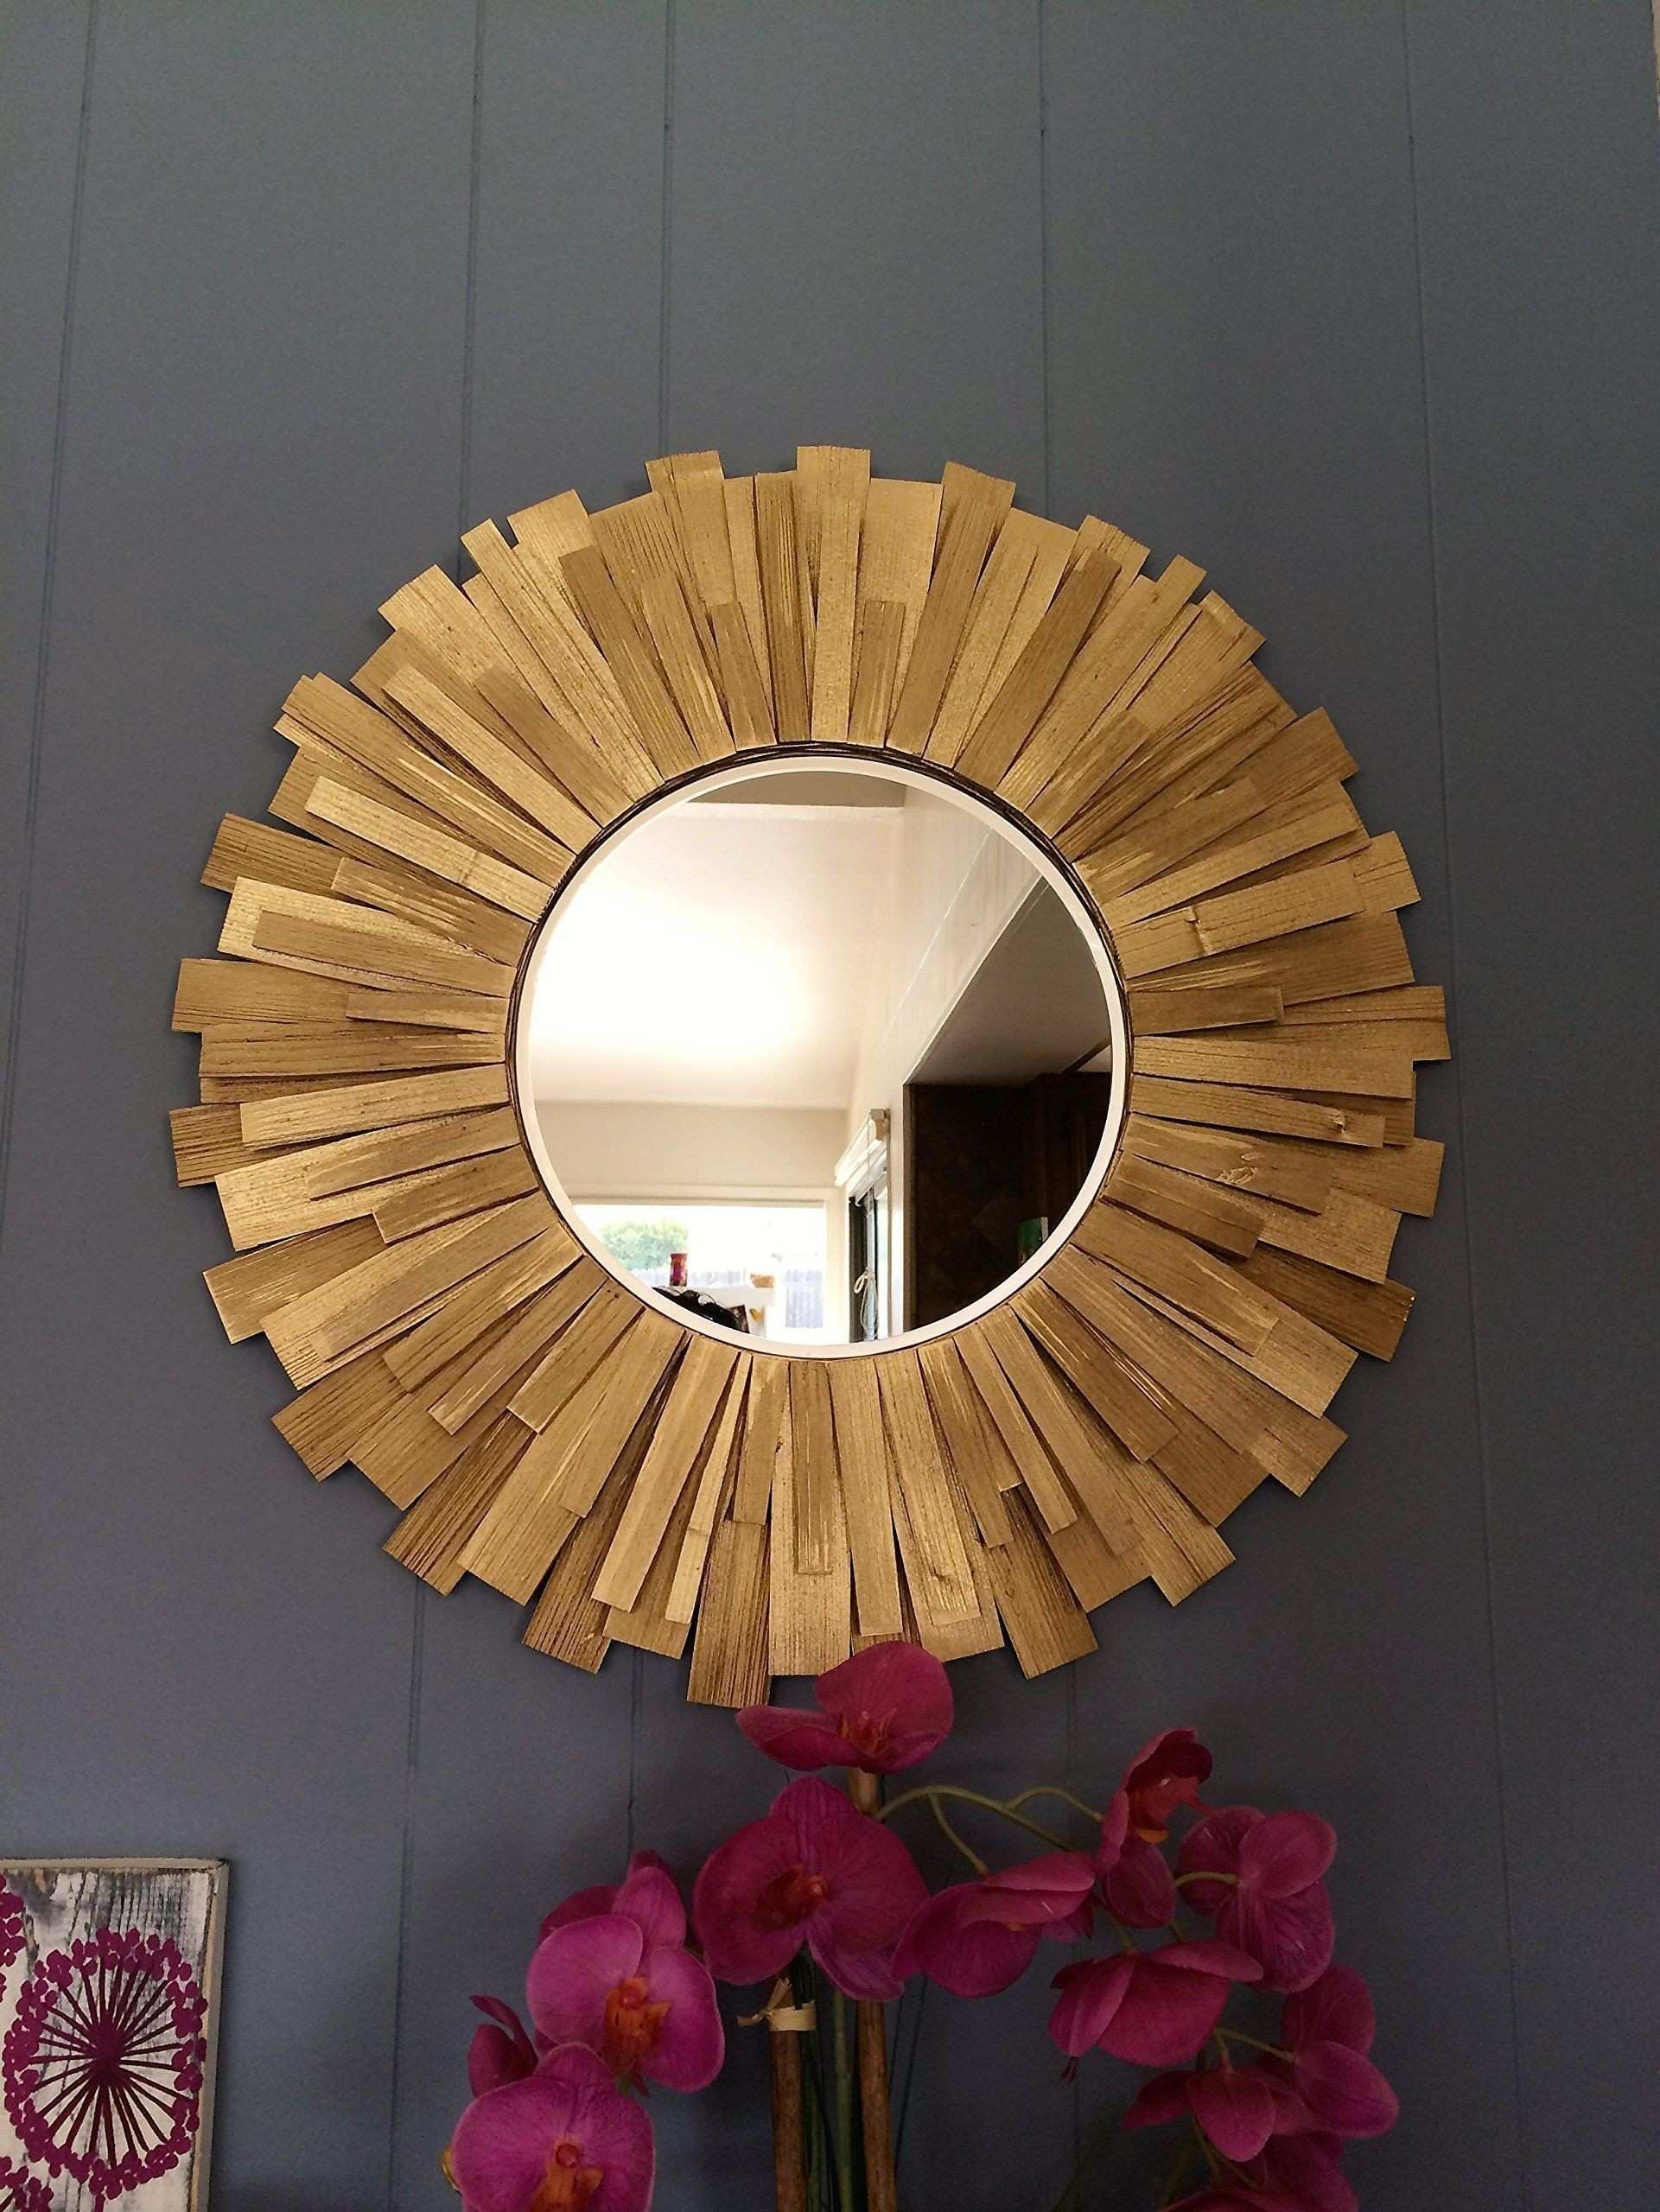 "Sunburst Round Handmade Wall Mirror Gold 24"" Handmade Features"